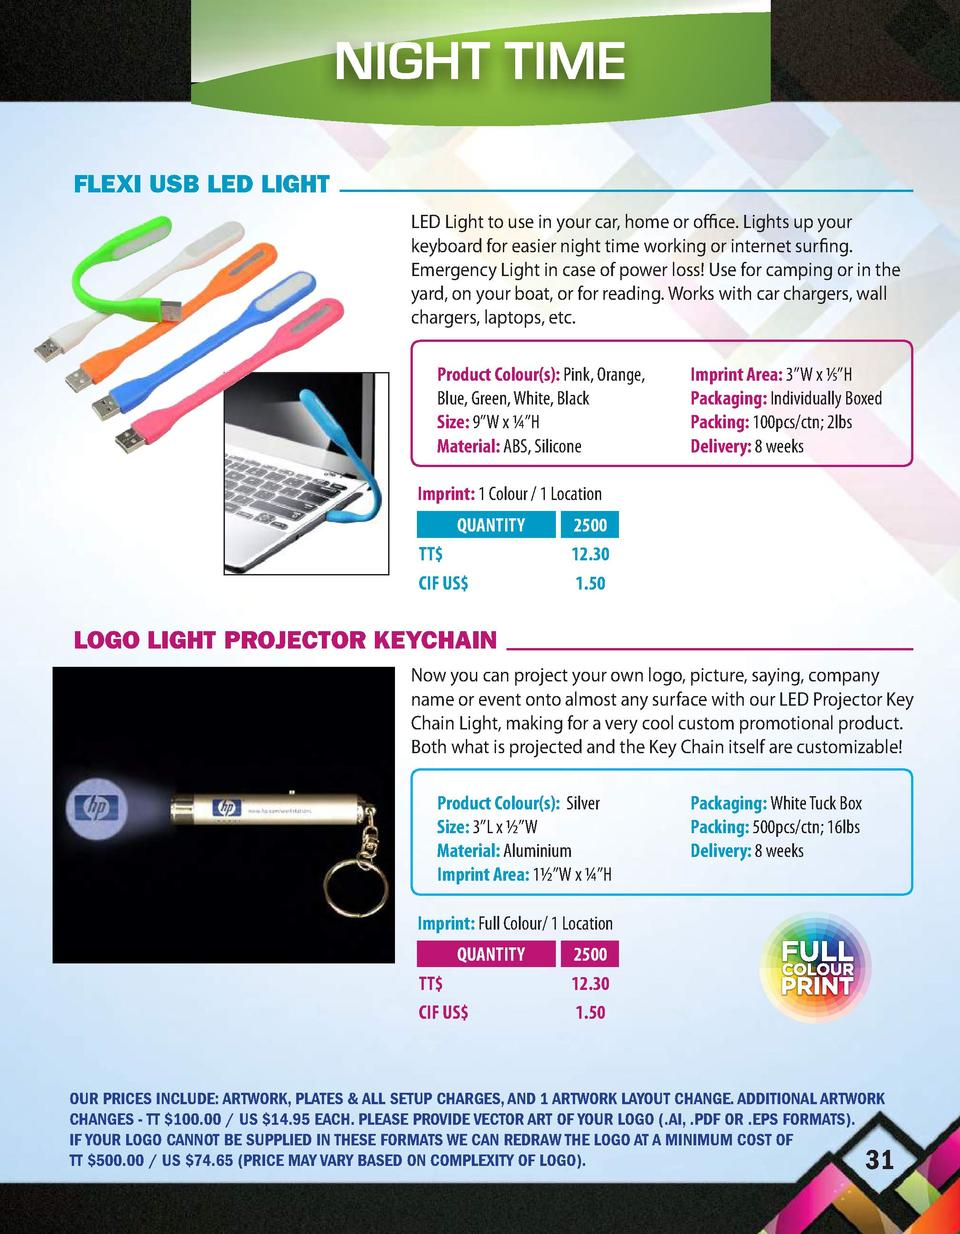 NIGHT TIME BAND ON FLEXI USB LED LIGHT LED Light to use in your car, home or office. Lights up your keyboard for easier ni...